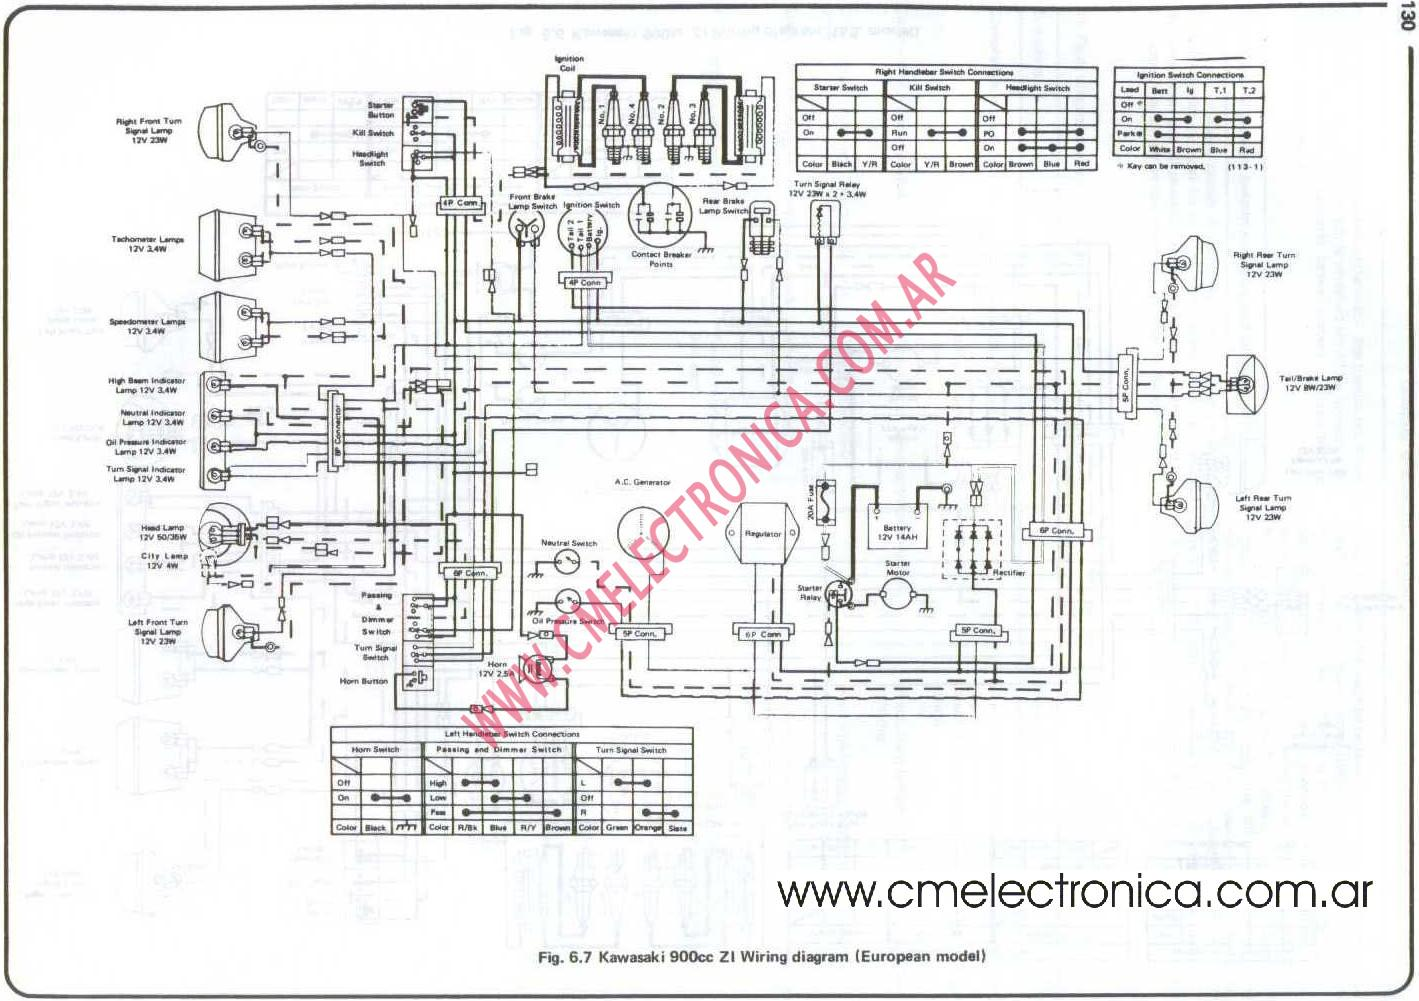 kawasaki z1 900 z1 wiring diagram coleman furnace wiring diagram \u2022 wiring diagrams Philco Model 60 at aneh.co